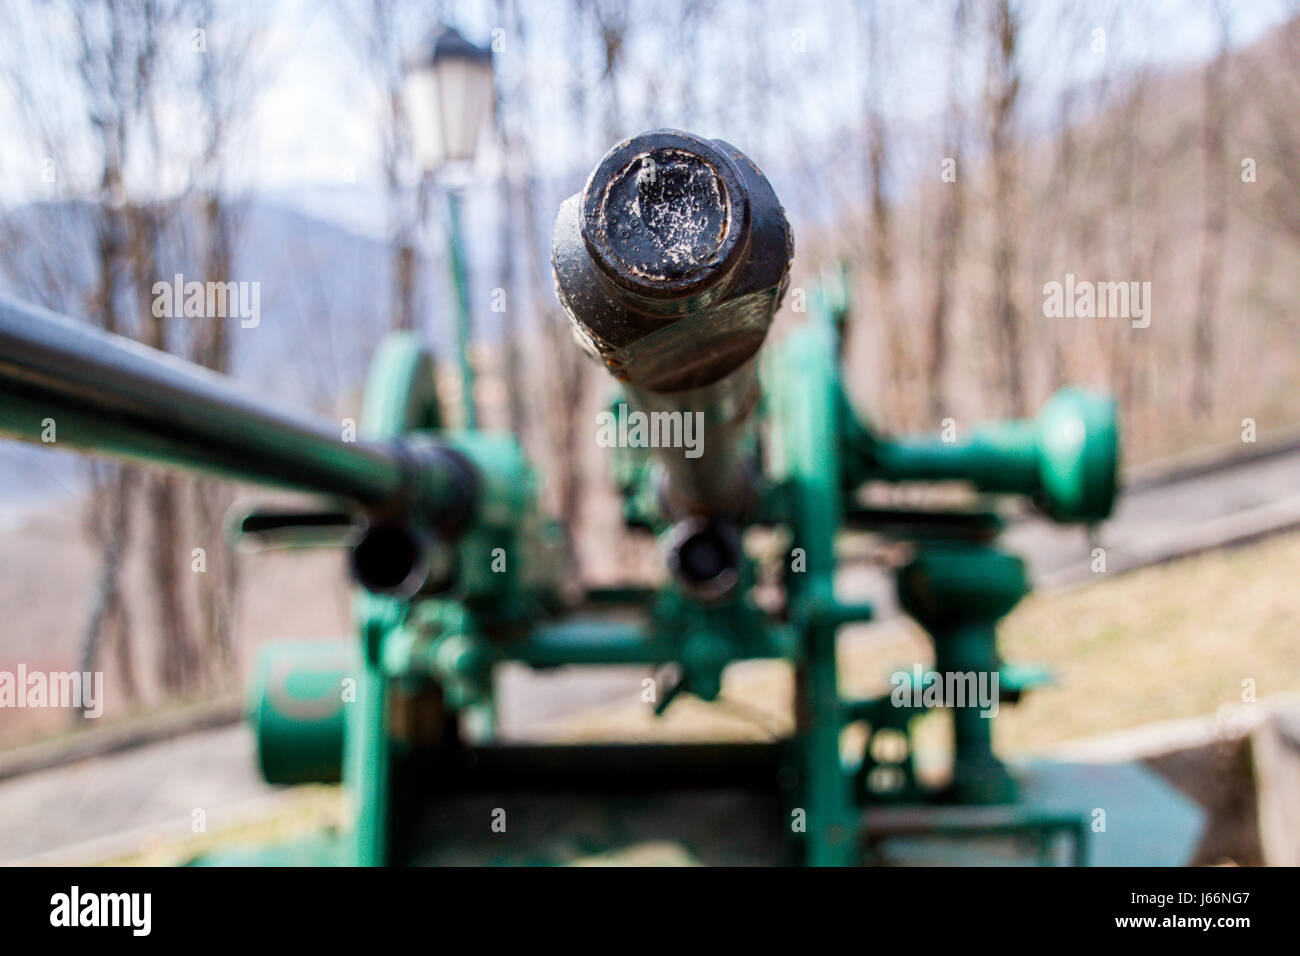 War artillery, tanks, cannons, machine guns at the position shelling, pipes directed towards the city - Stock Image